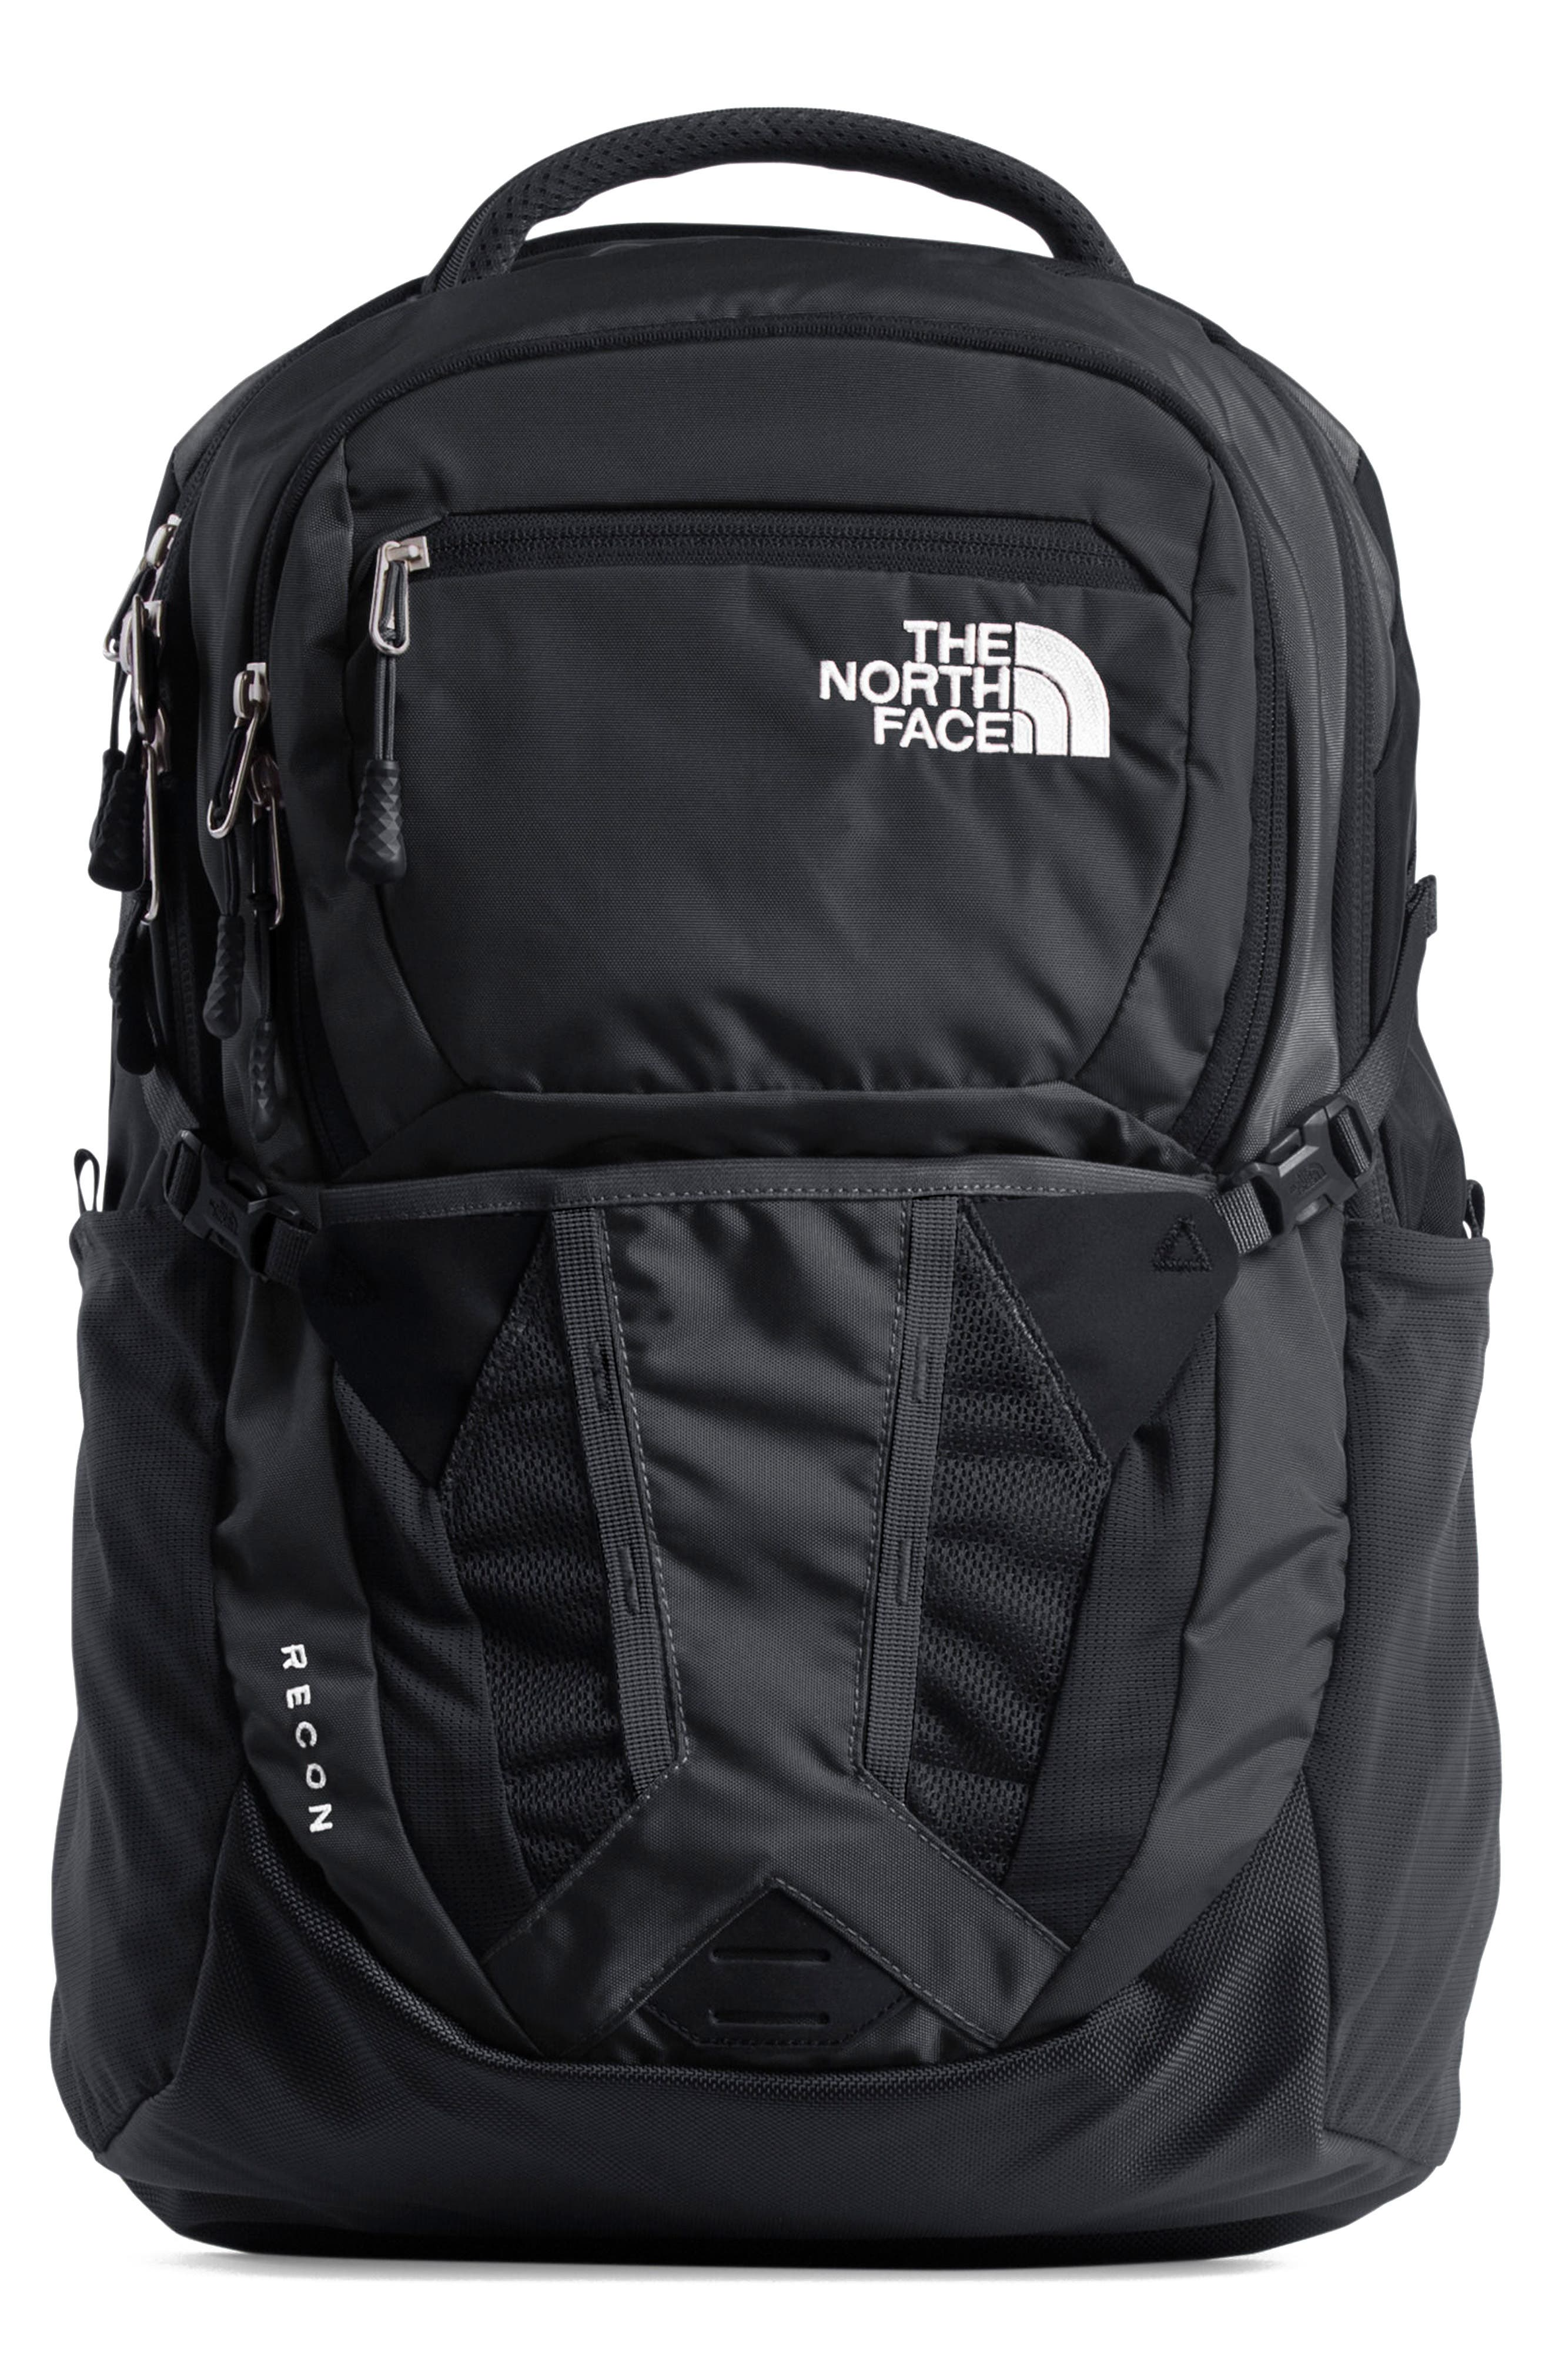 THE NORTH FACE, Recon Backpack, Main thumbnail 1, color, TNF BLACK